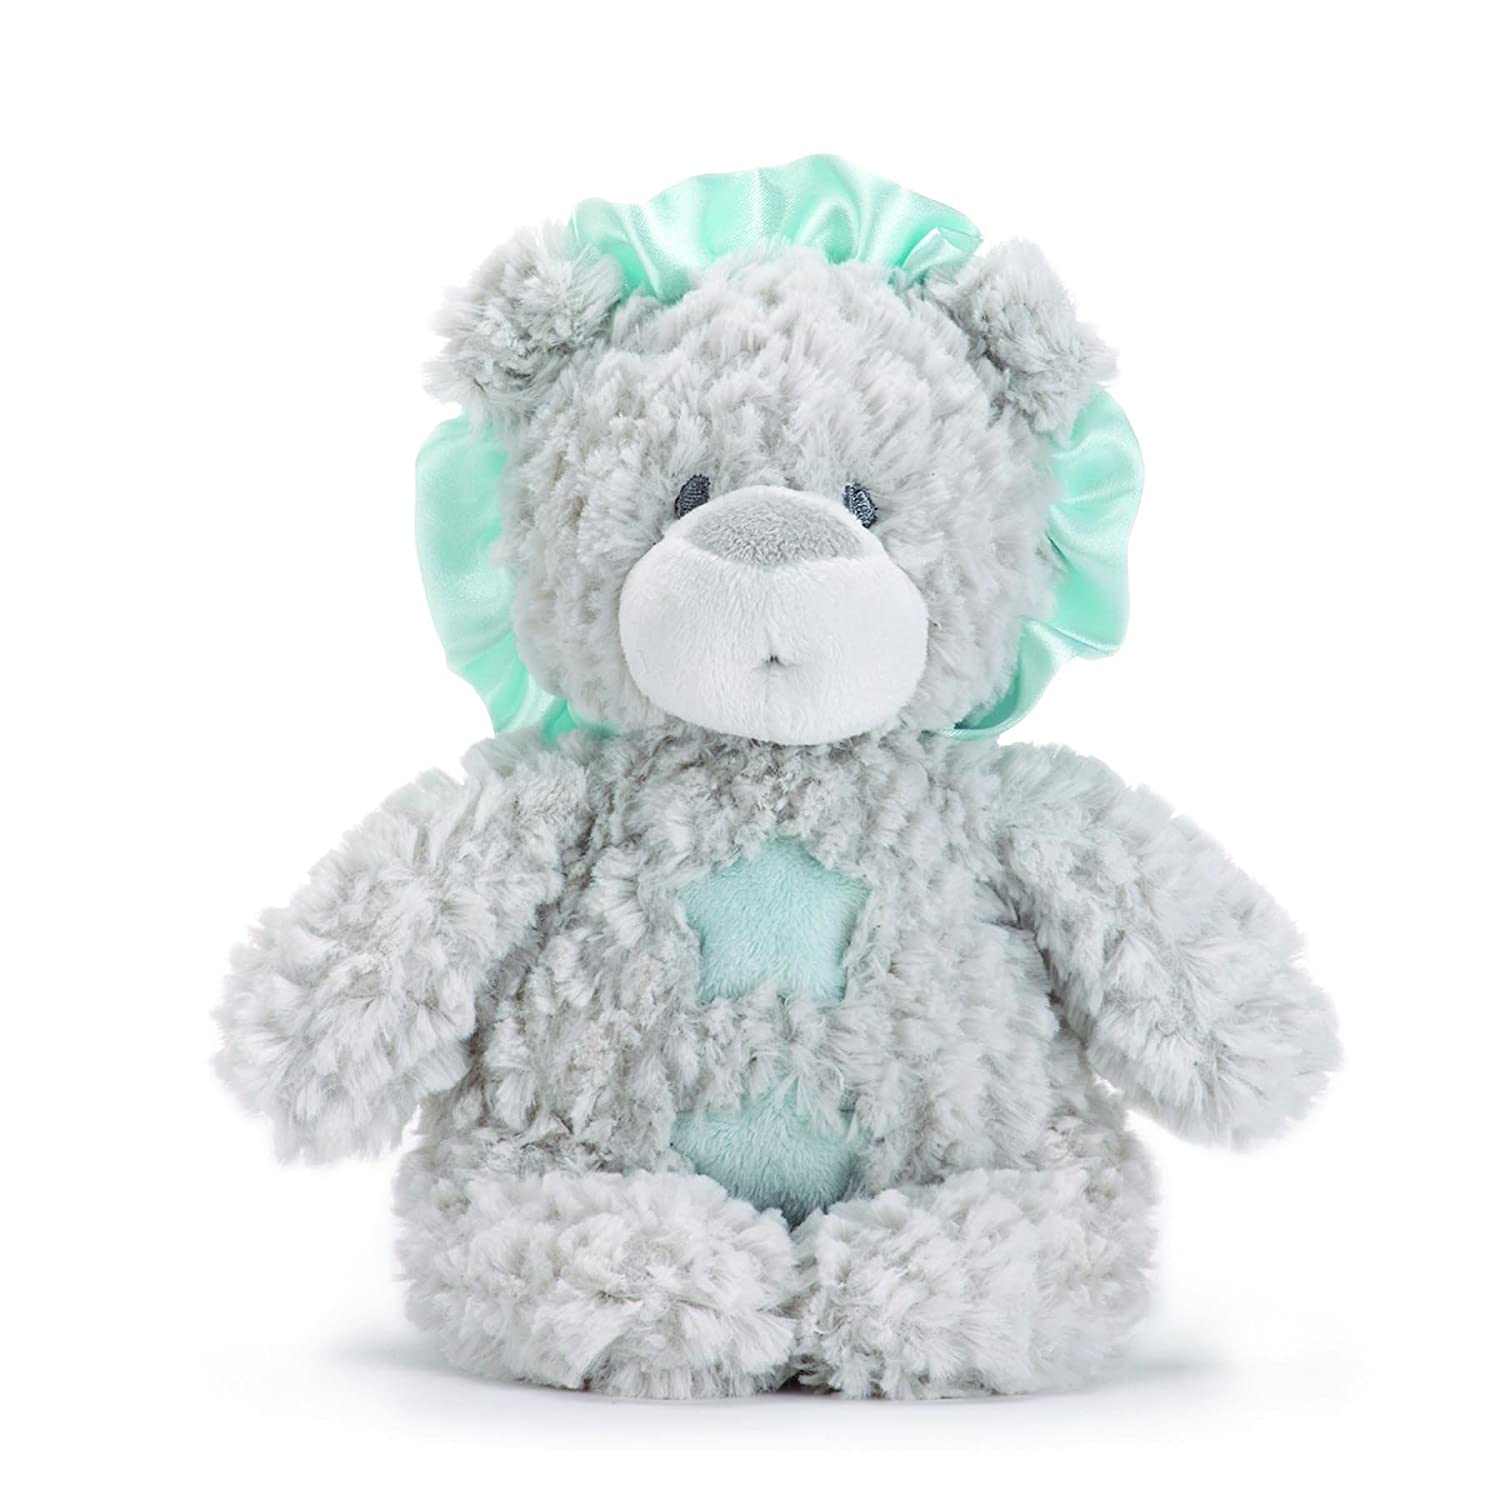 Nat and Jules Light Up Musical Toy, Lucas Lion by Nat and Jules   B011RUZDJY